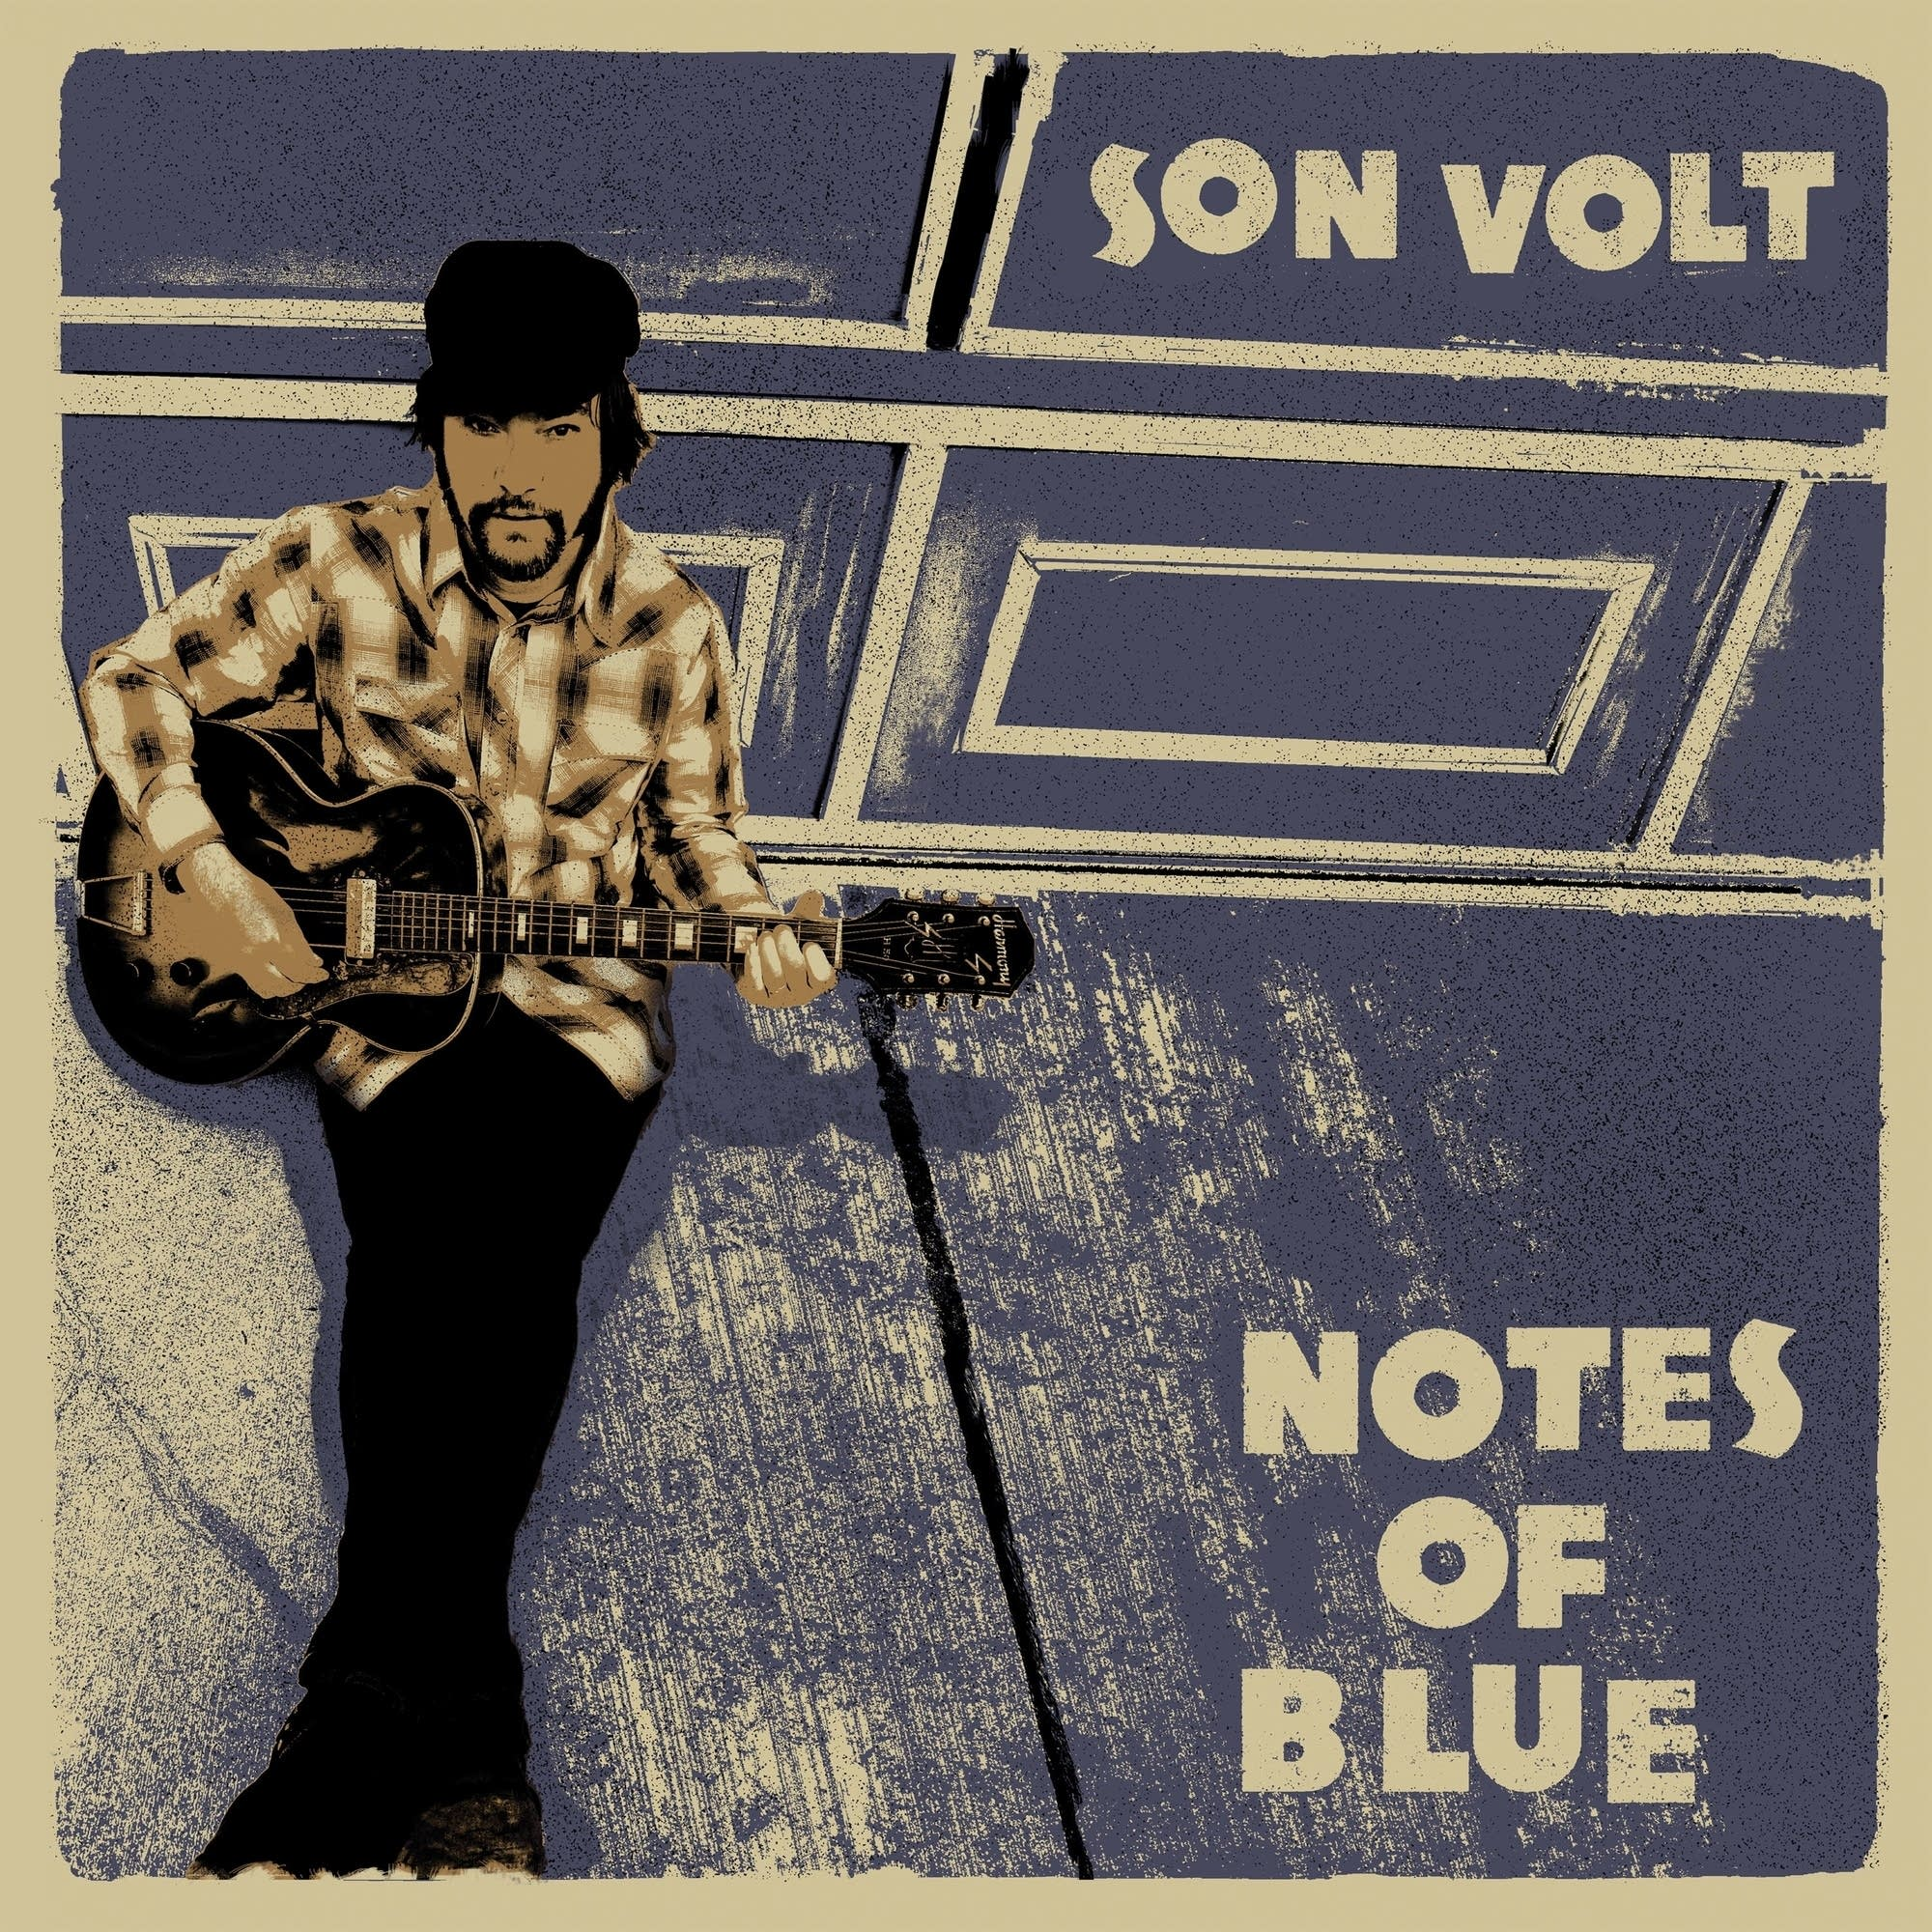 Son Volt, 'Notes of Blue'